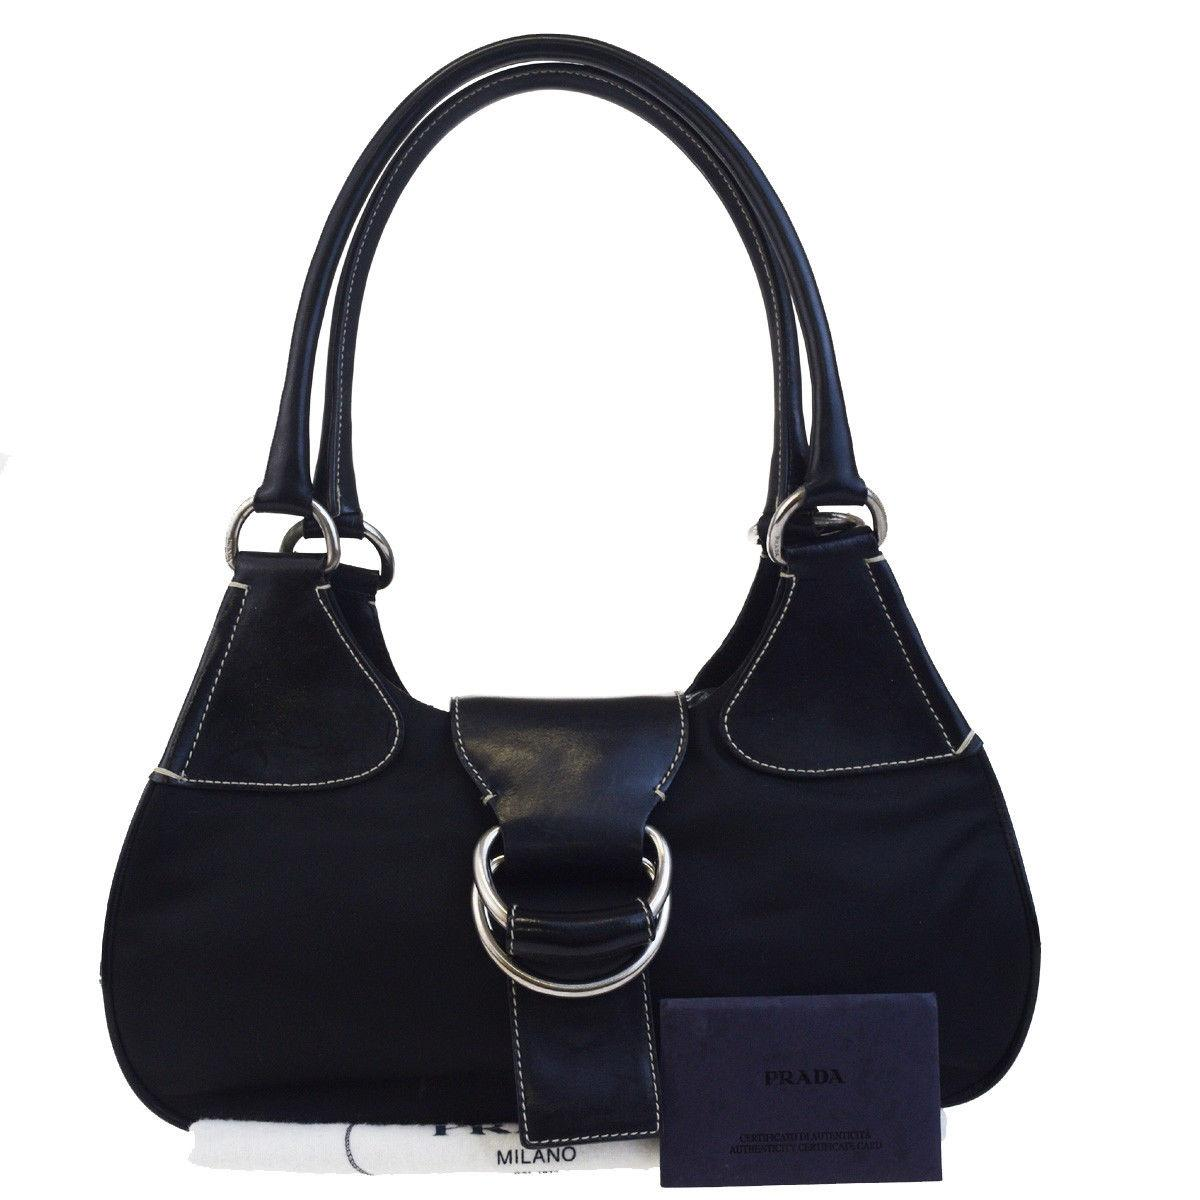 c7eb23b9422a1a ireland prada made in italy tote in black 3bddf d22a4